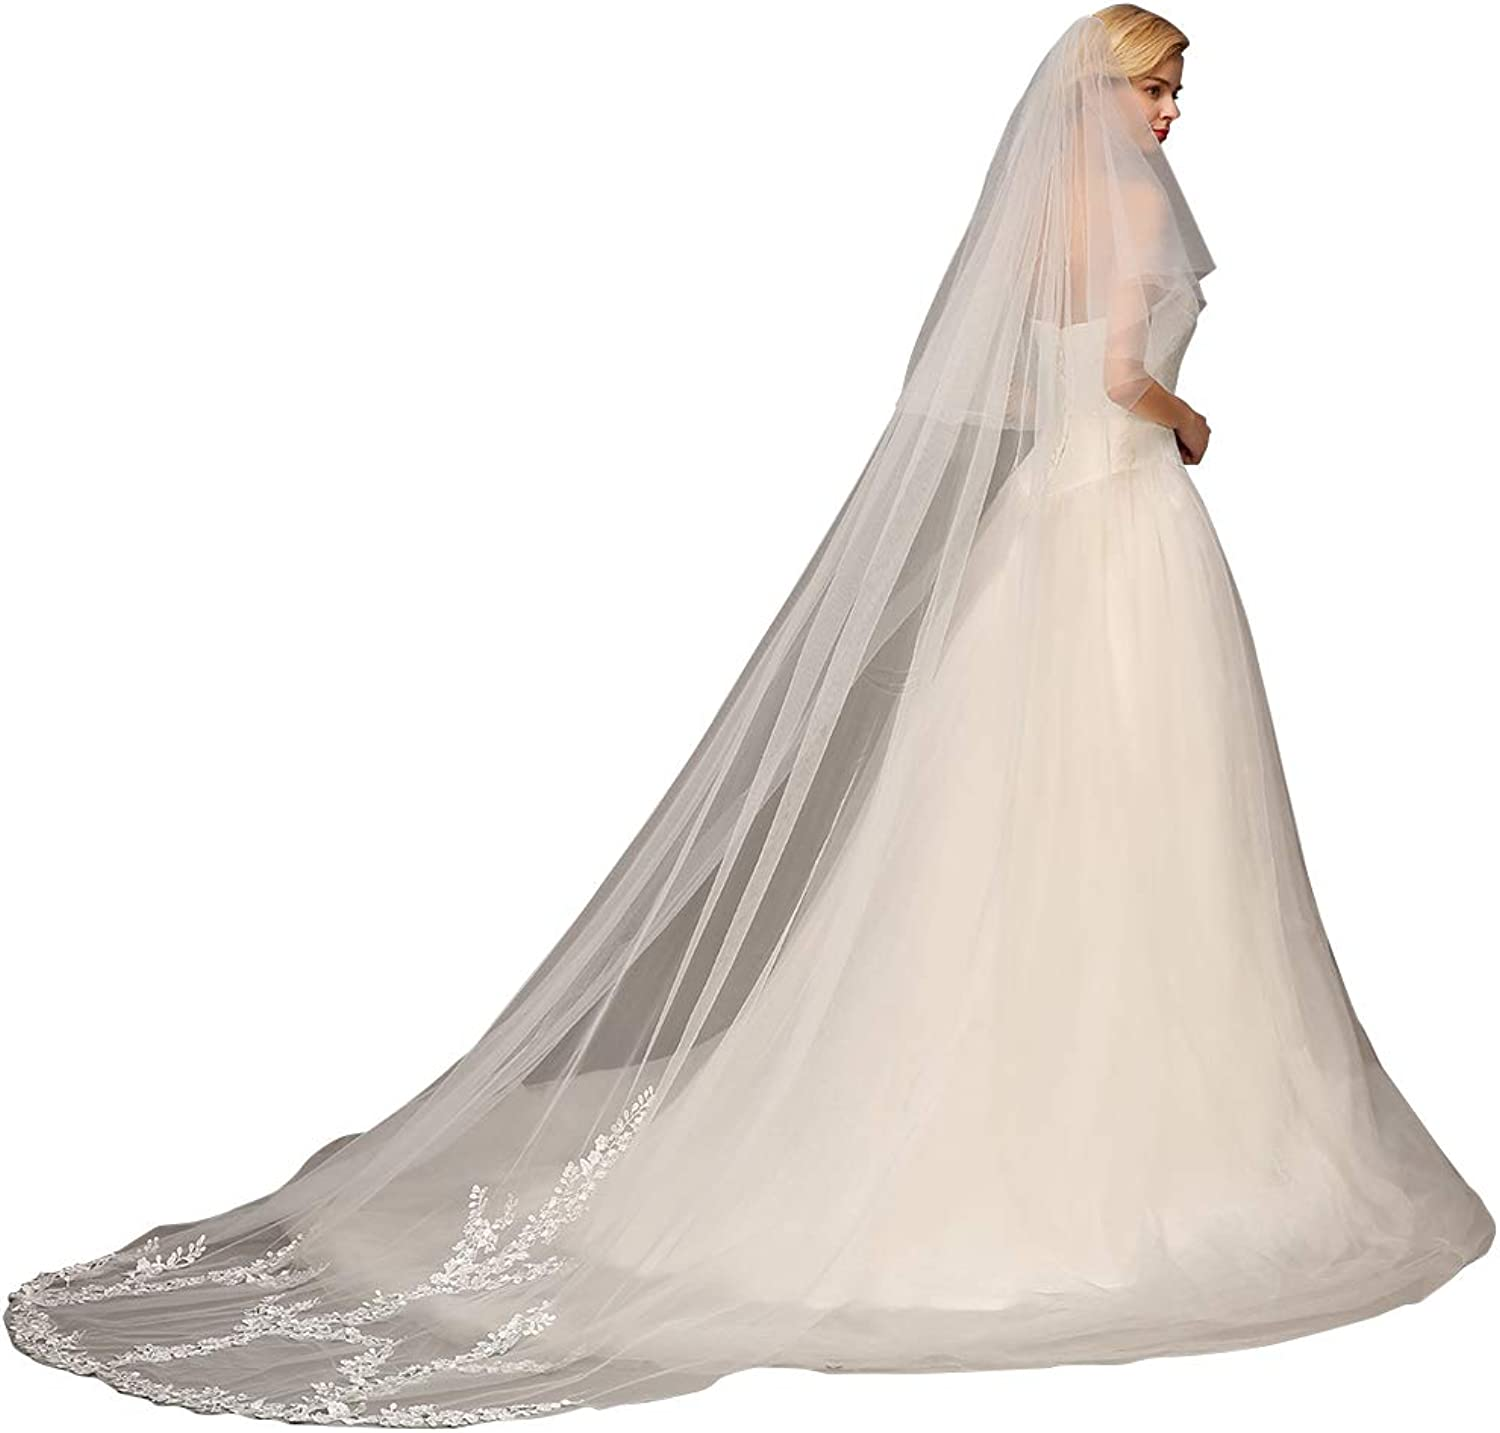 Babyonline Women's 3 m Length 2 Tier Tulle Sheer Lace Wedding Bridal Veil with Comb